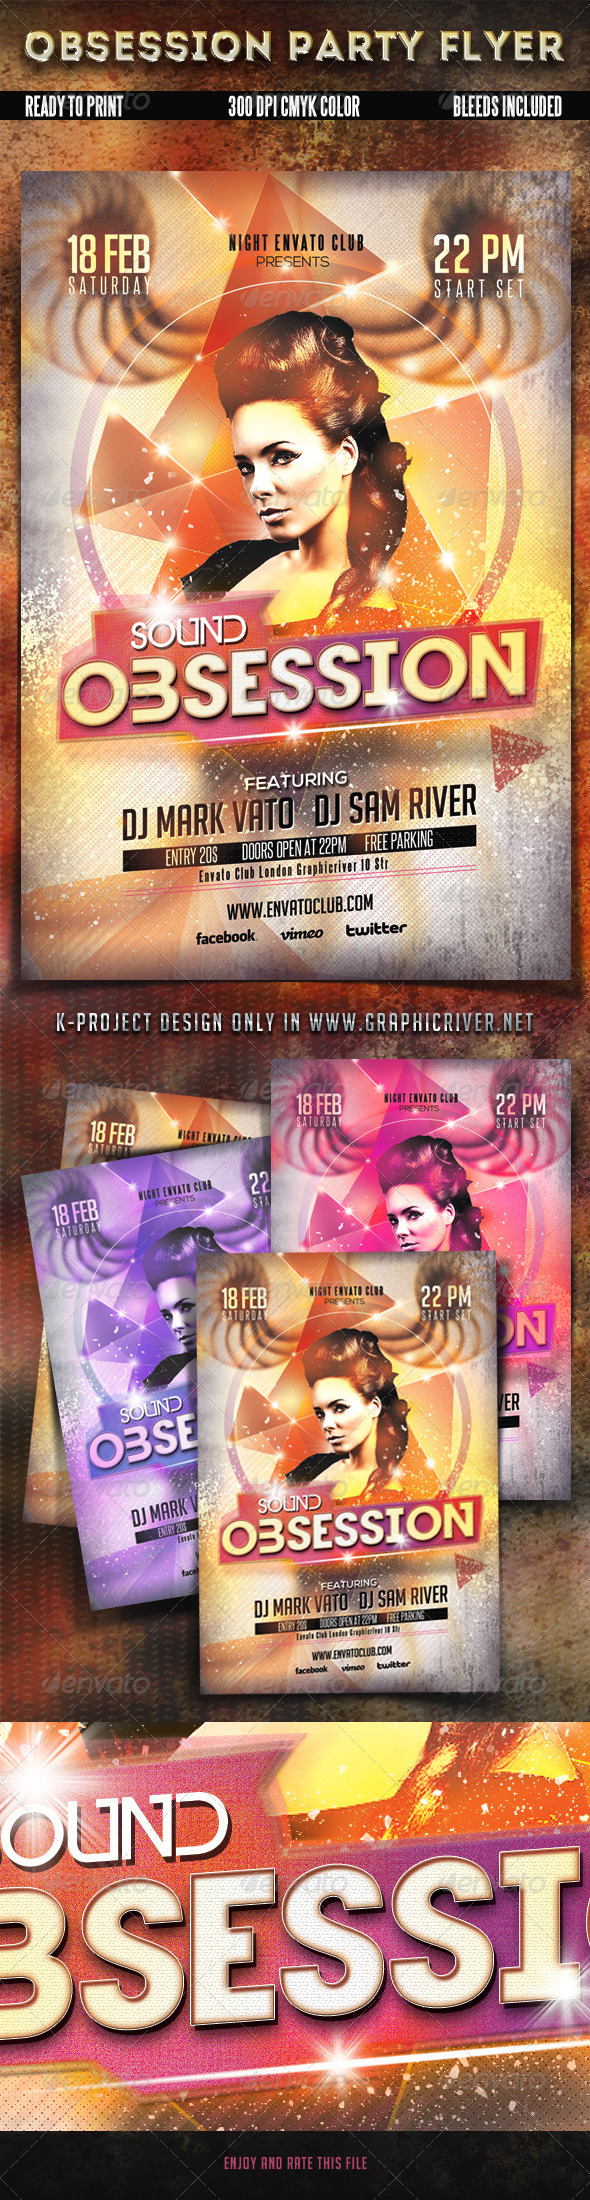 Obsession Party Flyer